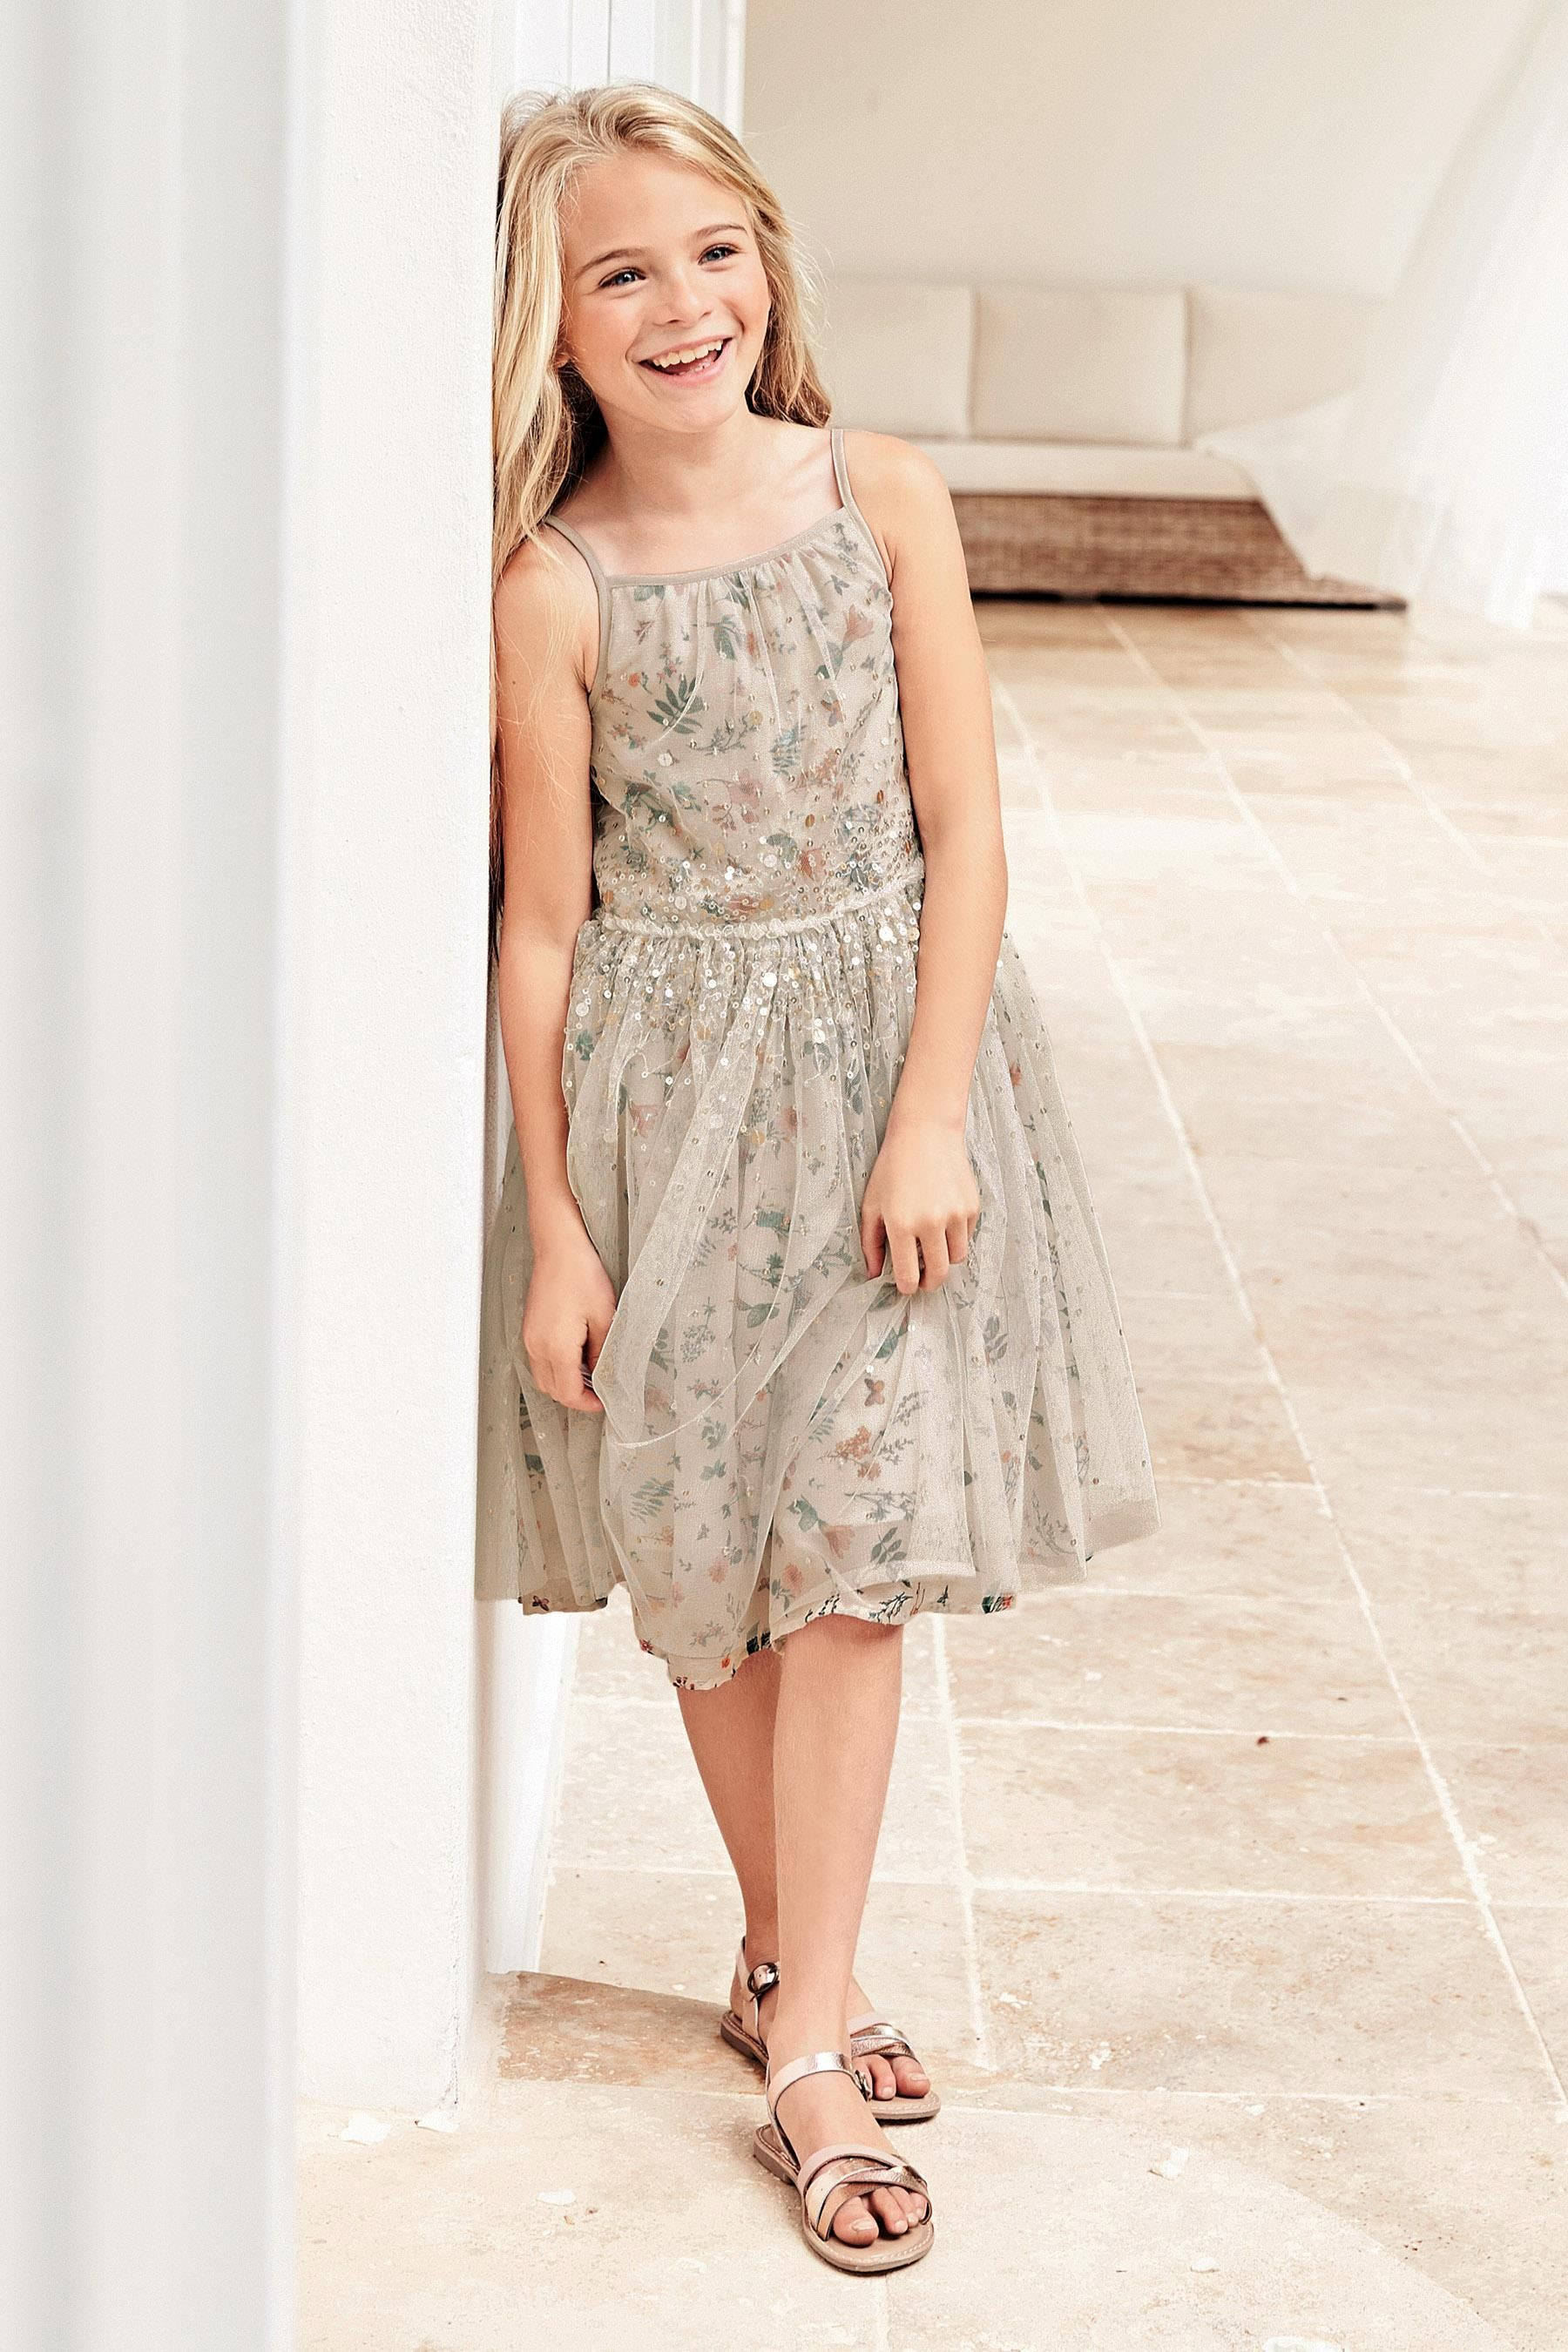 Next online party dresses - Buy Ecru Printed Graduated Sequin Dress 3 14yrs From The Next Uk Online